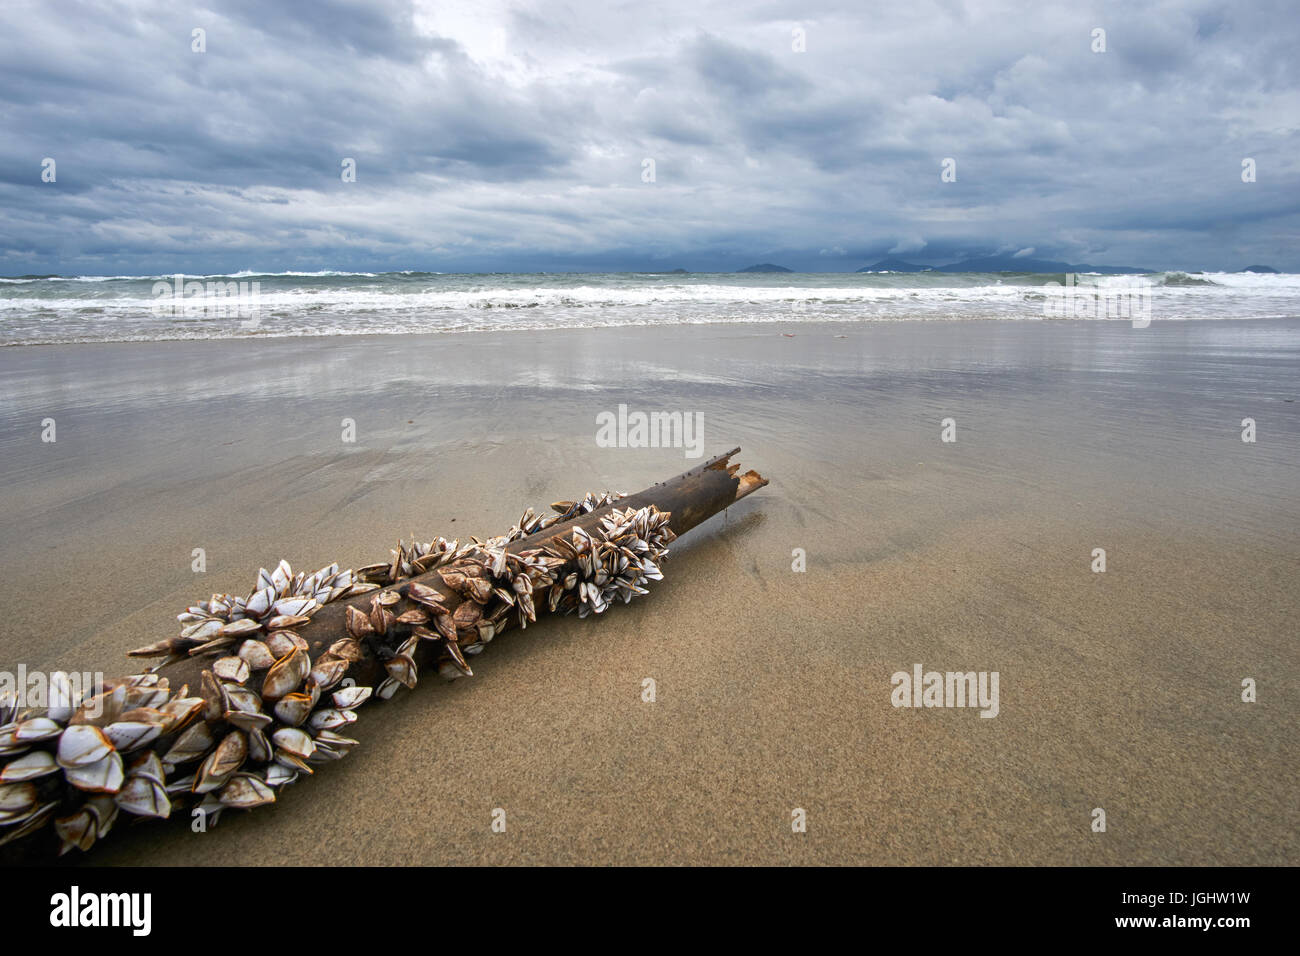 Bamboo stick with mussels on it lying on the beach. Stormy evening at the beach with dramatic clouds and waves. - Stock Image